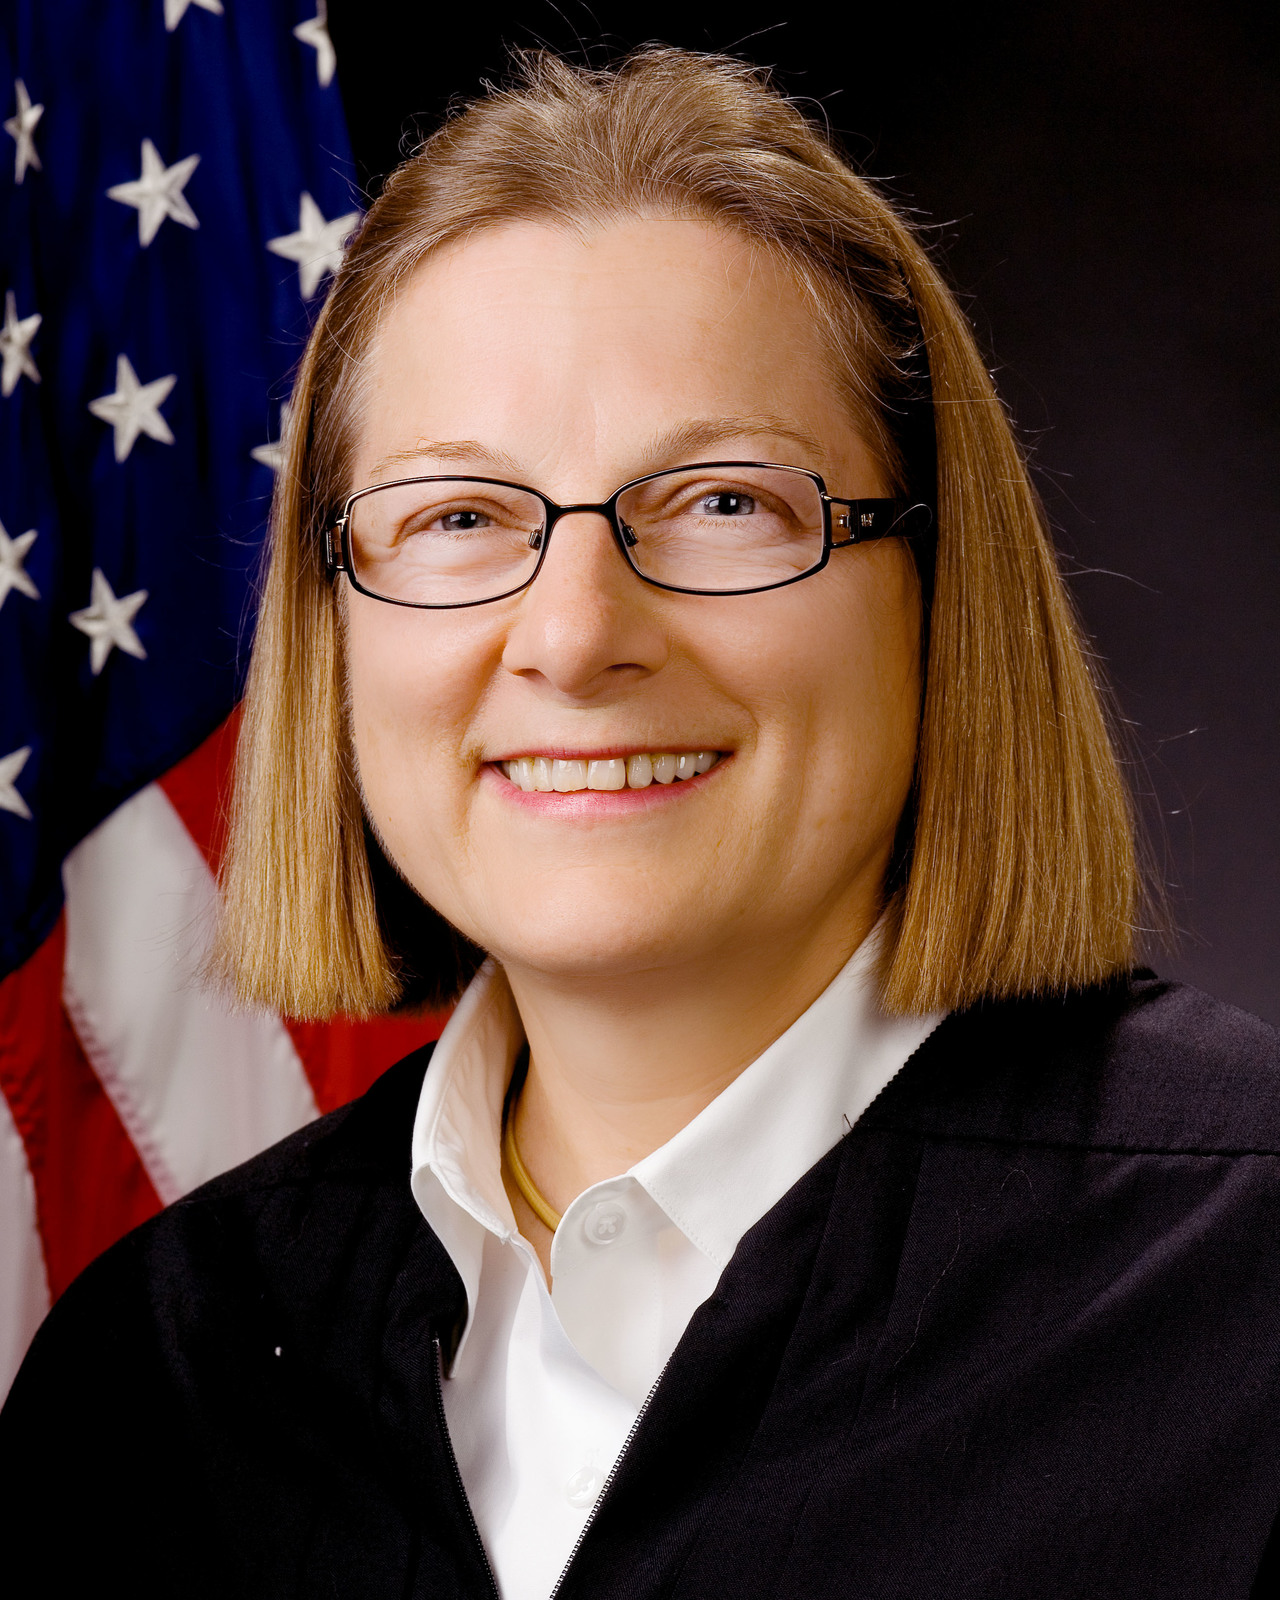 Office of Administrative Law Judges, Environmental Appeals Board - Portraits of Judge Barbara Gunning [412-APD-28-BarbaraGunning_8x10.jpg]